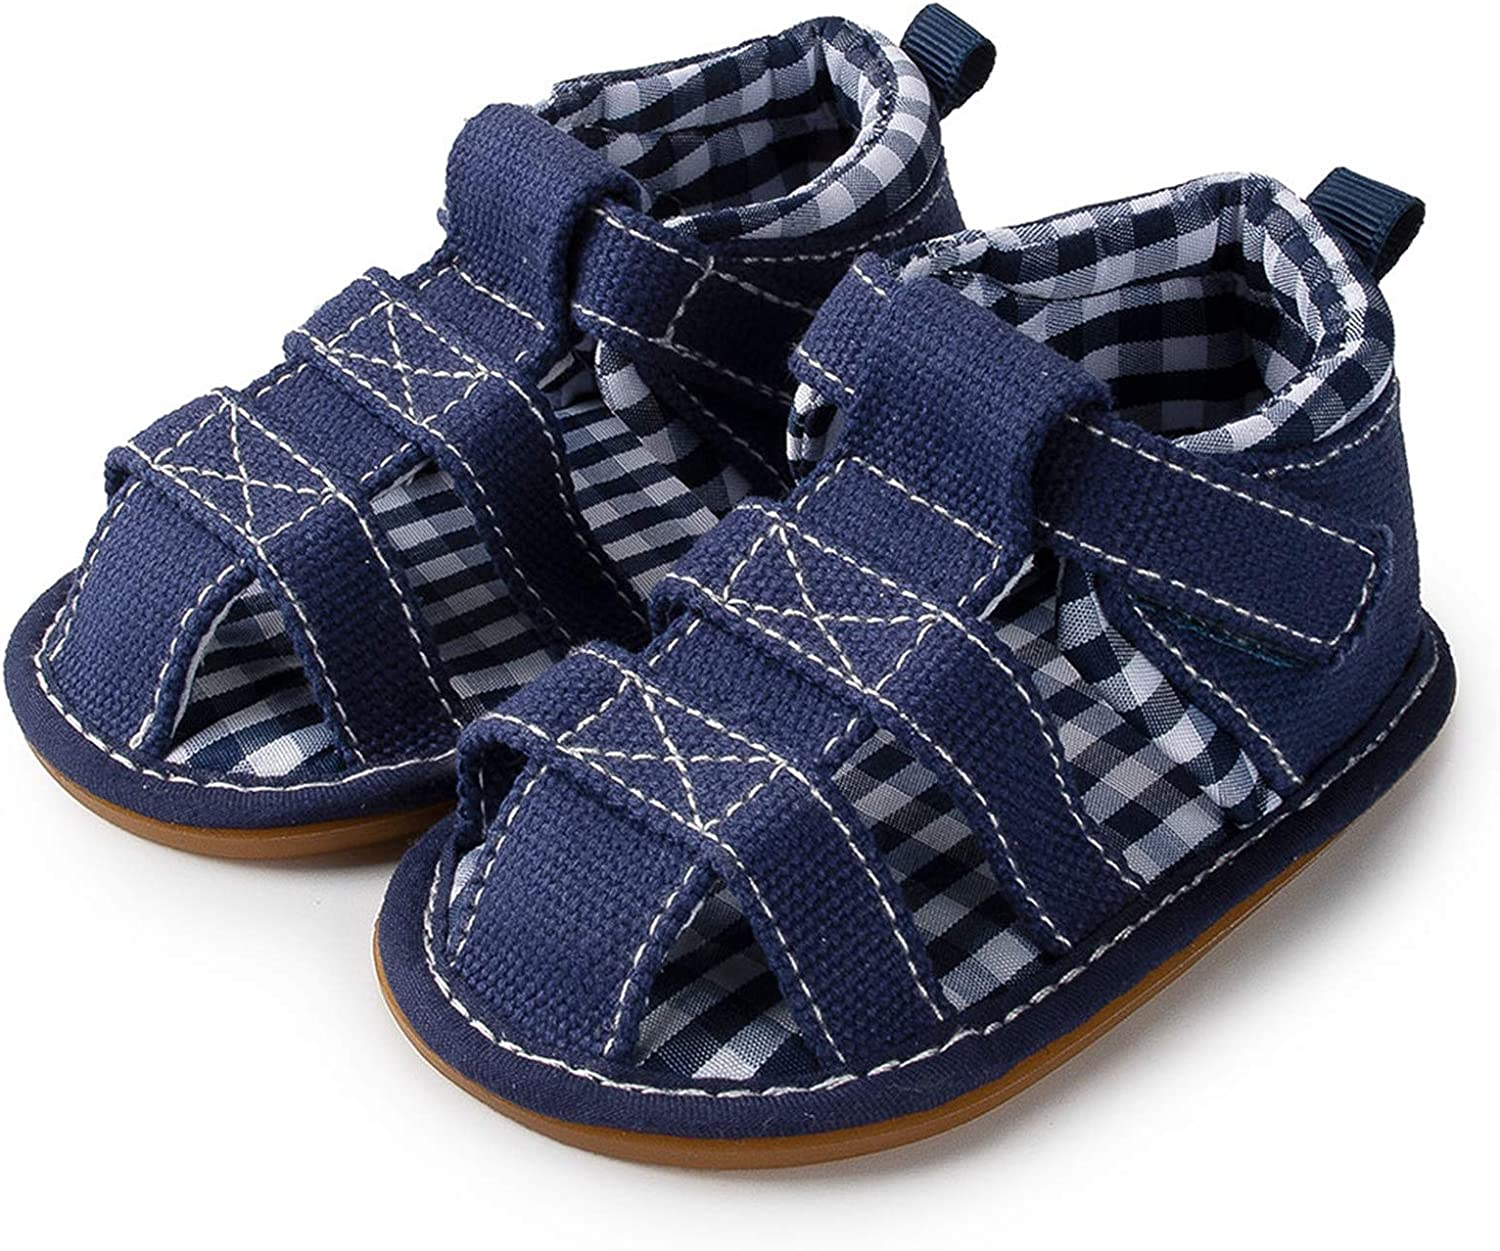 12-18 Months, B-Gray Meckior Summer Baby Infant Boys Sandals Canvas Soft Sole Non-Slip Closed Toe First Walkers Shoes